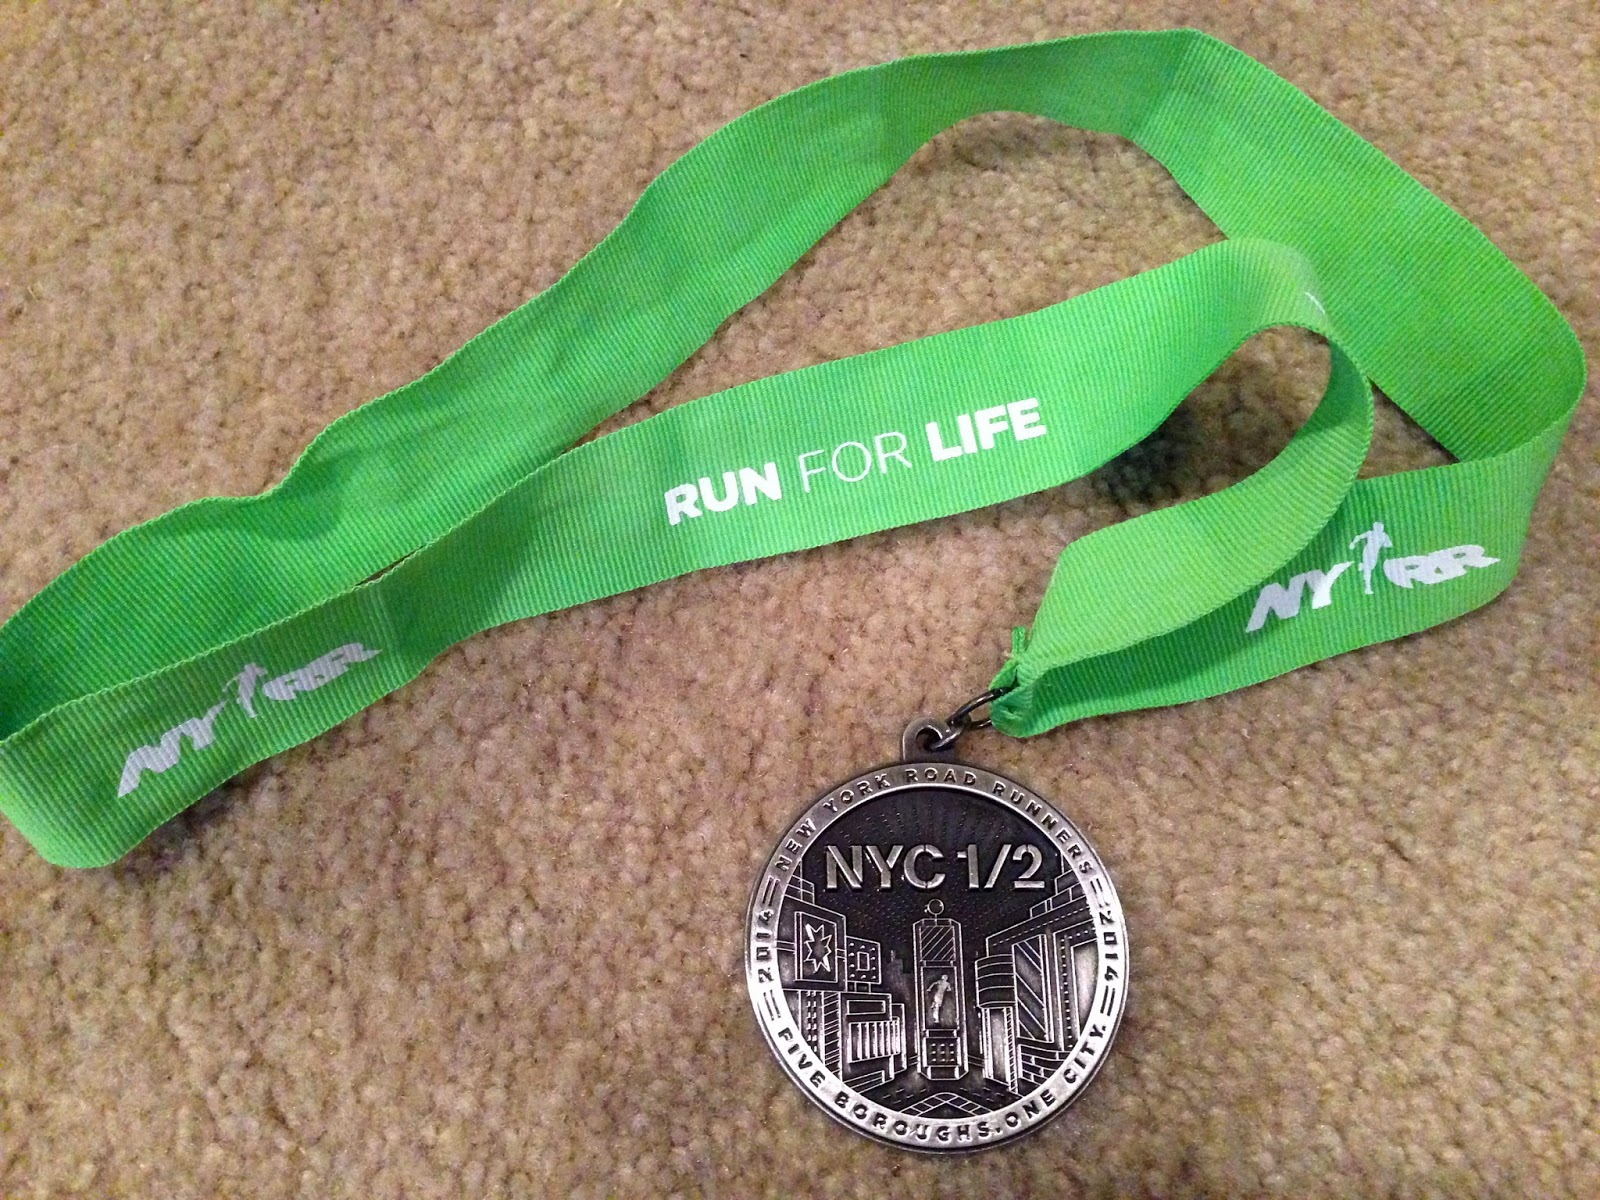 NYC half 2014 finisher medal